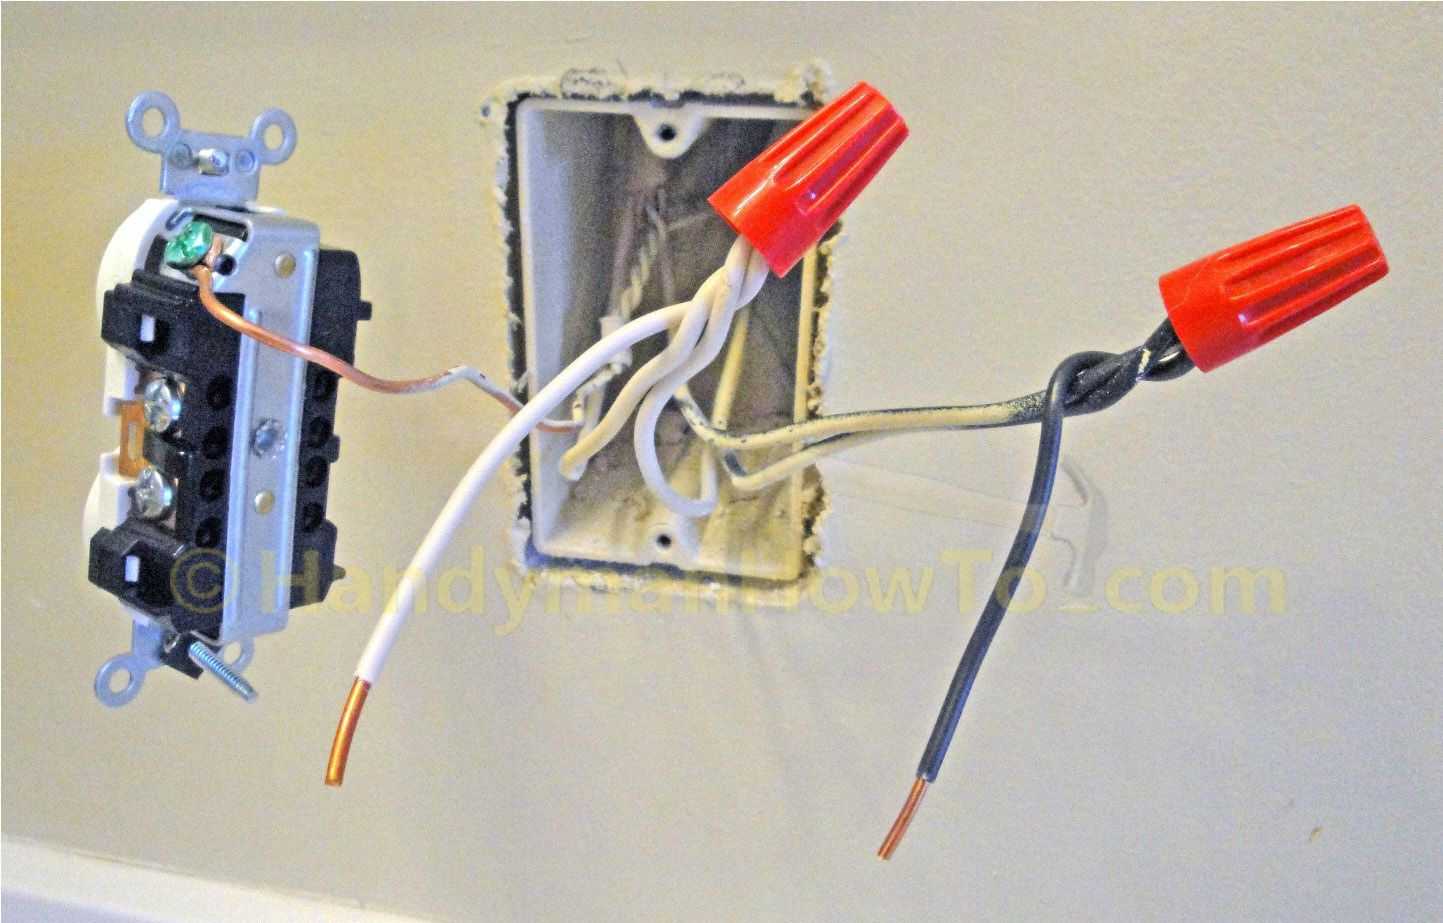 eb27a8c4cf82653085b1e6b3e2eb6f6a backwiring an electrical outlet in parallel with pigtail wiring receptacles in parallel diagram at fashall.co